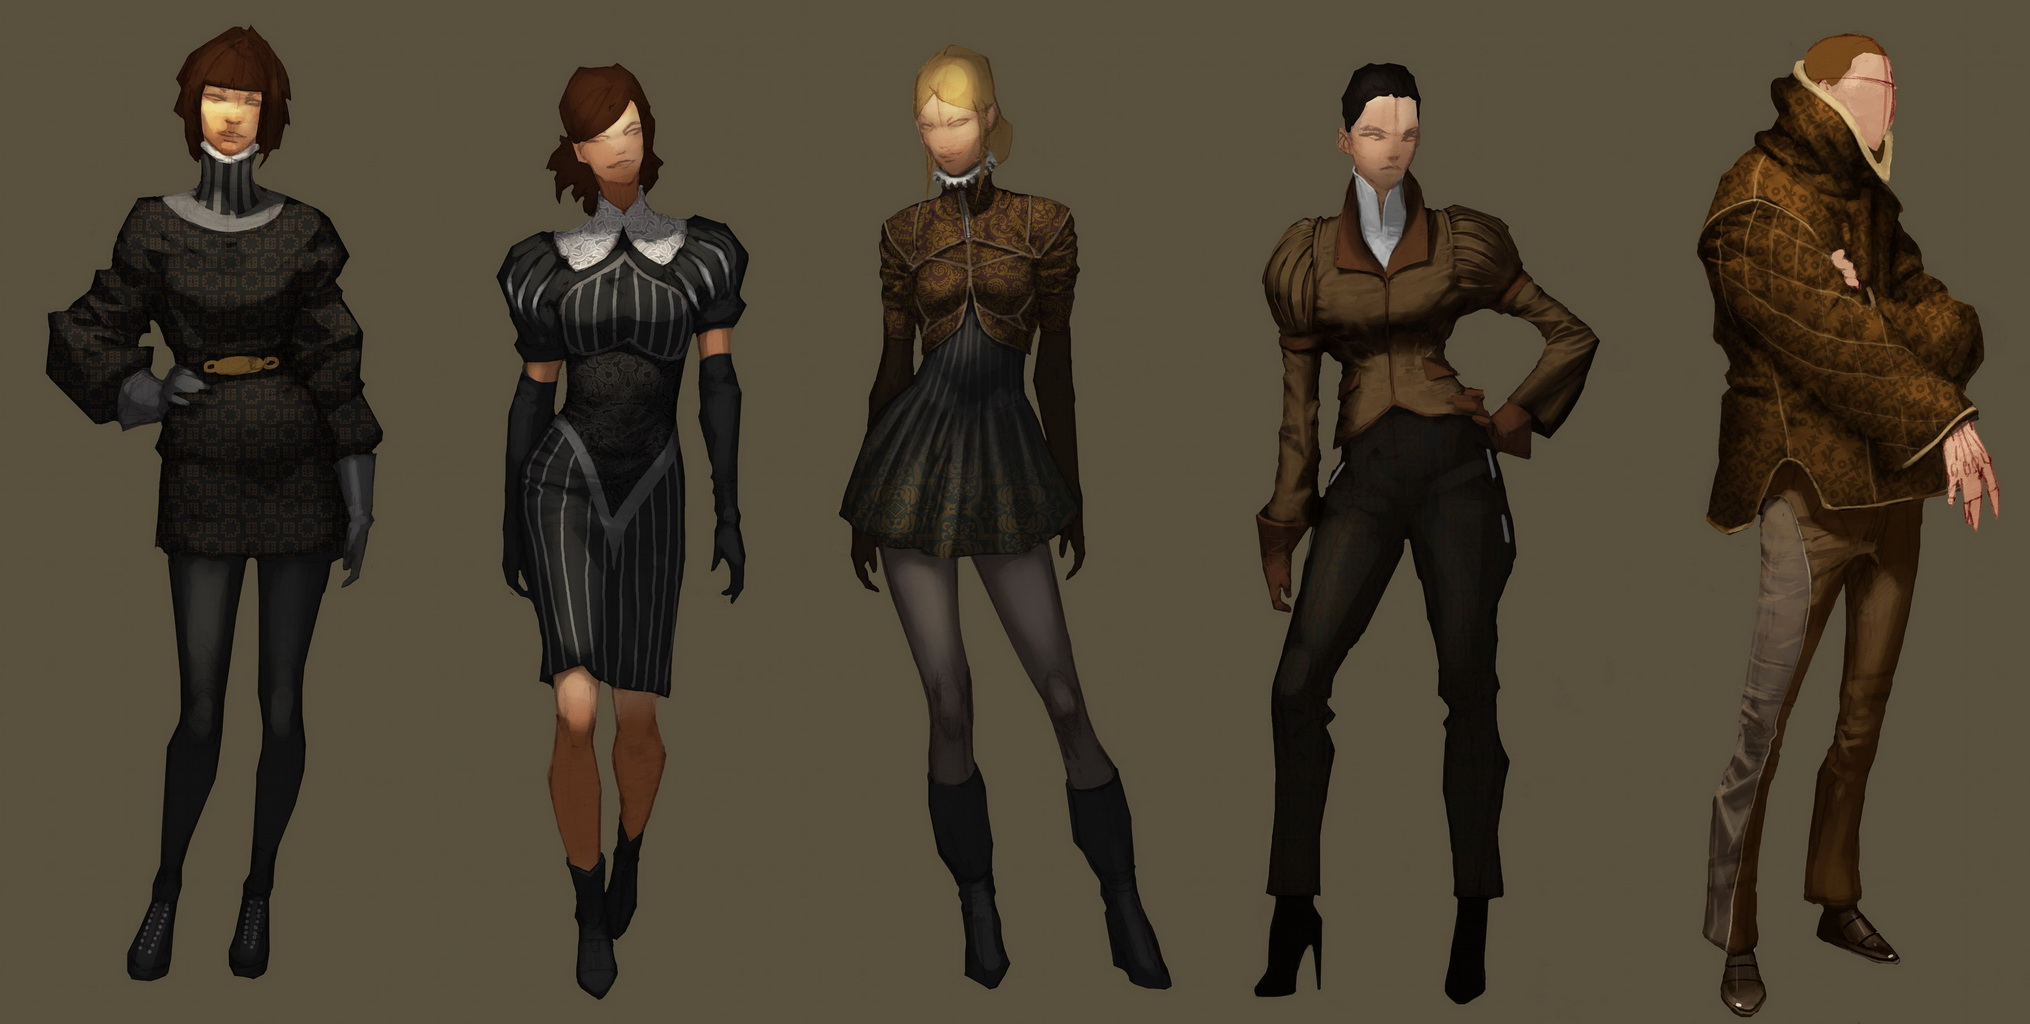 Campaign setting idea steampunk shanghai gangsters for Steampunk story ideas